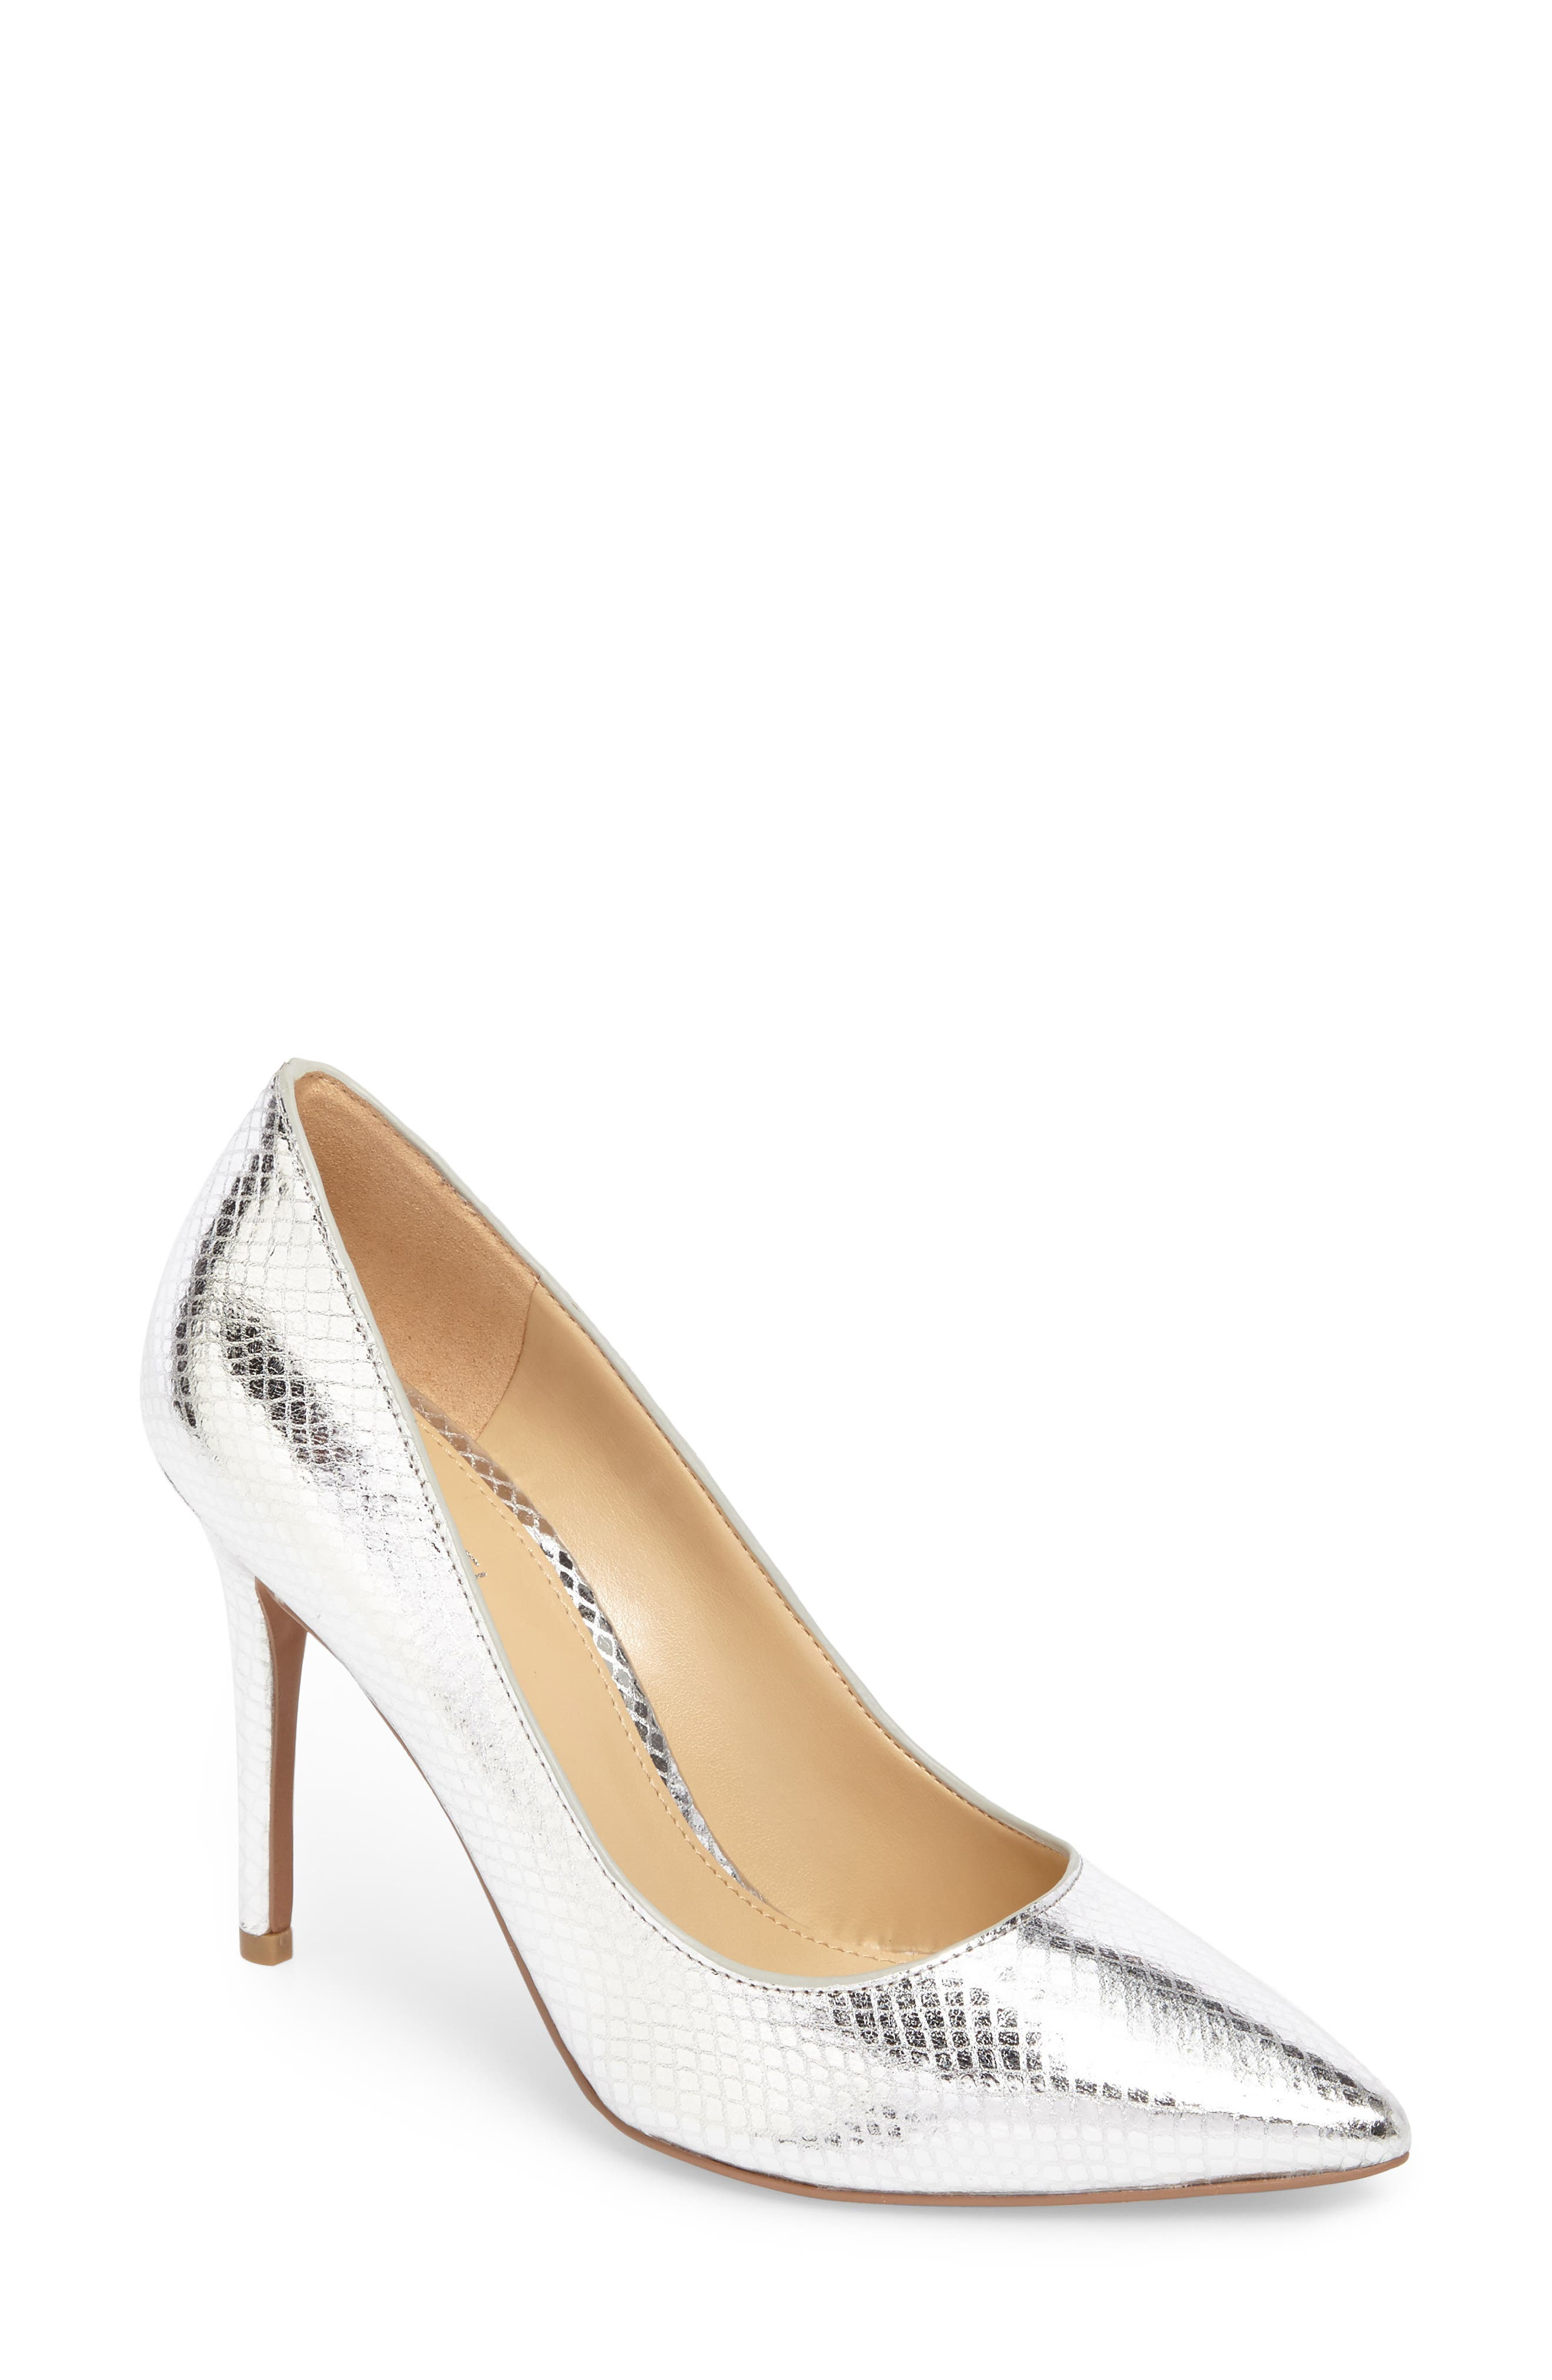 Claire Pointy Toe Pump,                             Main thumbnail 1, color,                             040